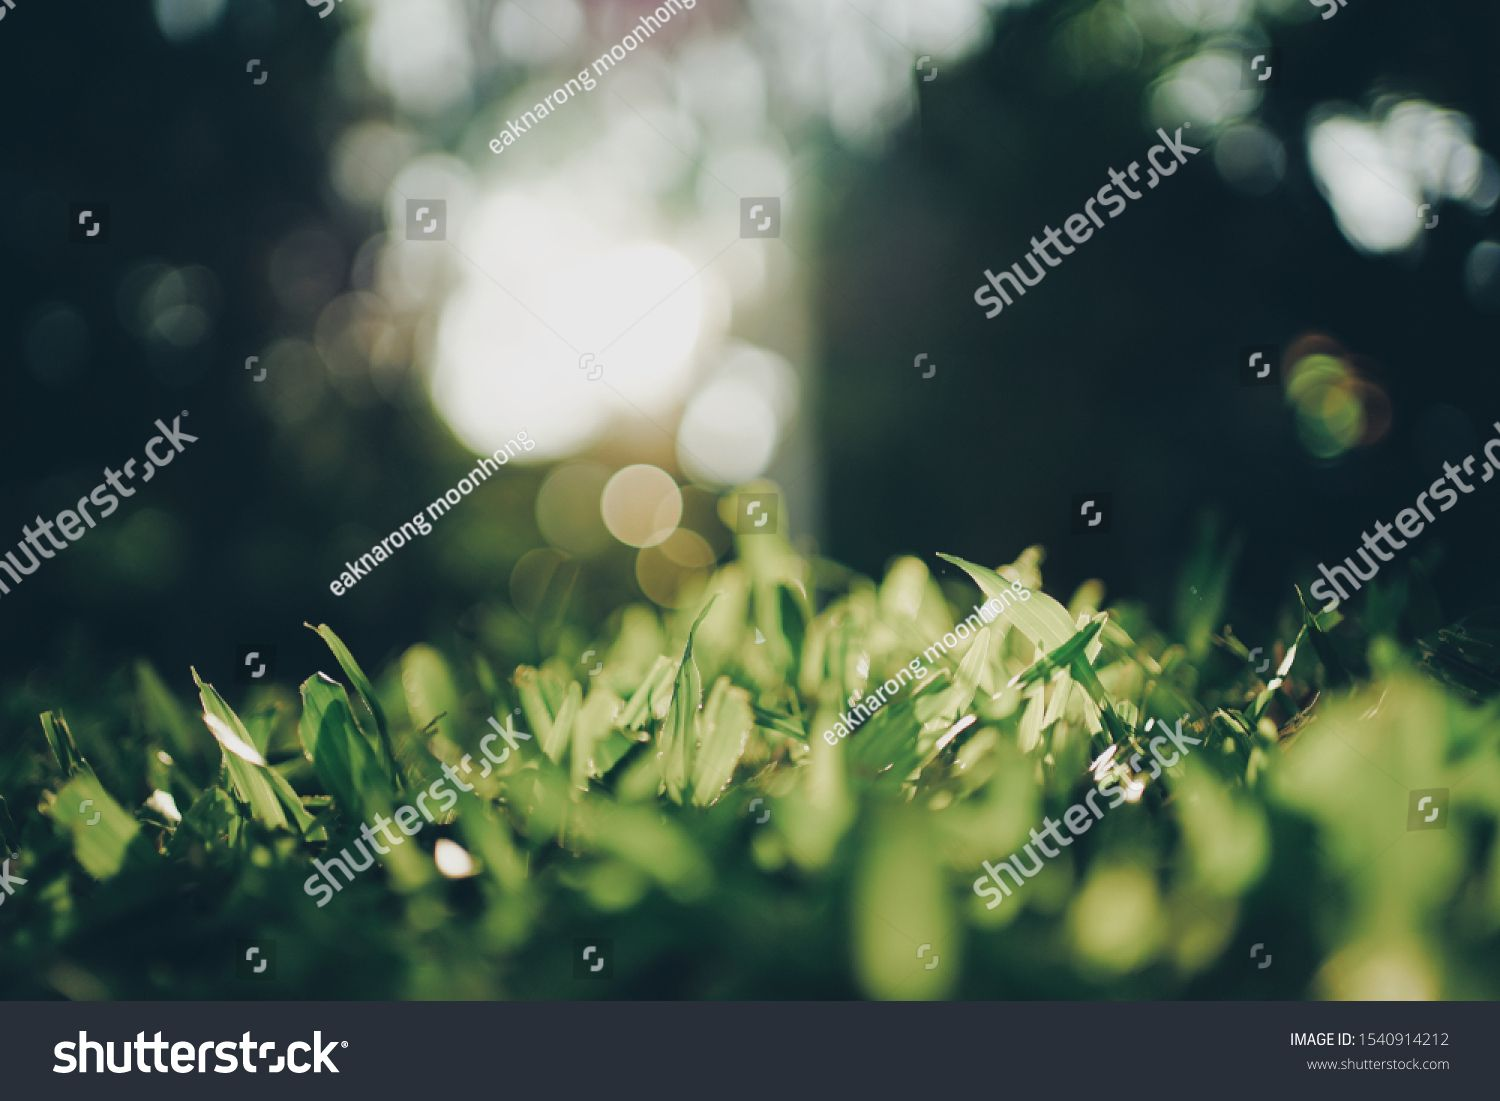 Closeup nature of green leaf on blurred greenery background in garden. Low key green nature leaf in garden. #Ad , #AFF, #green#leaf#Closeup#nature